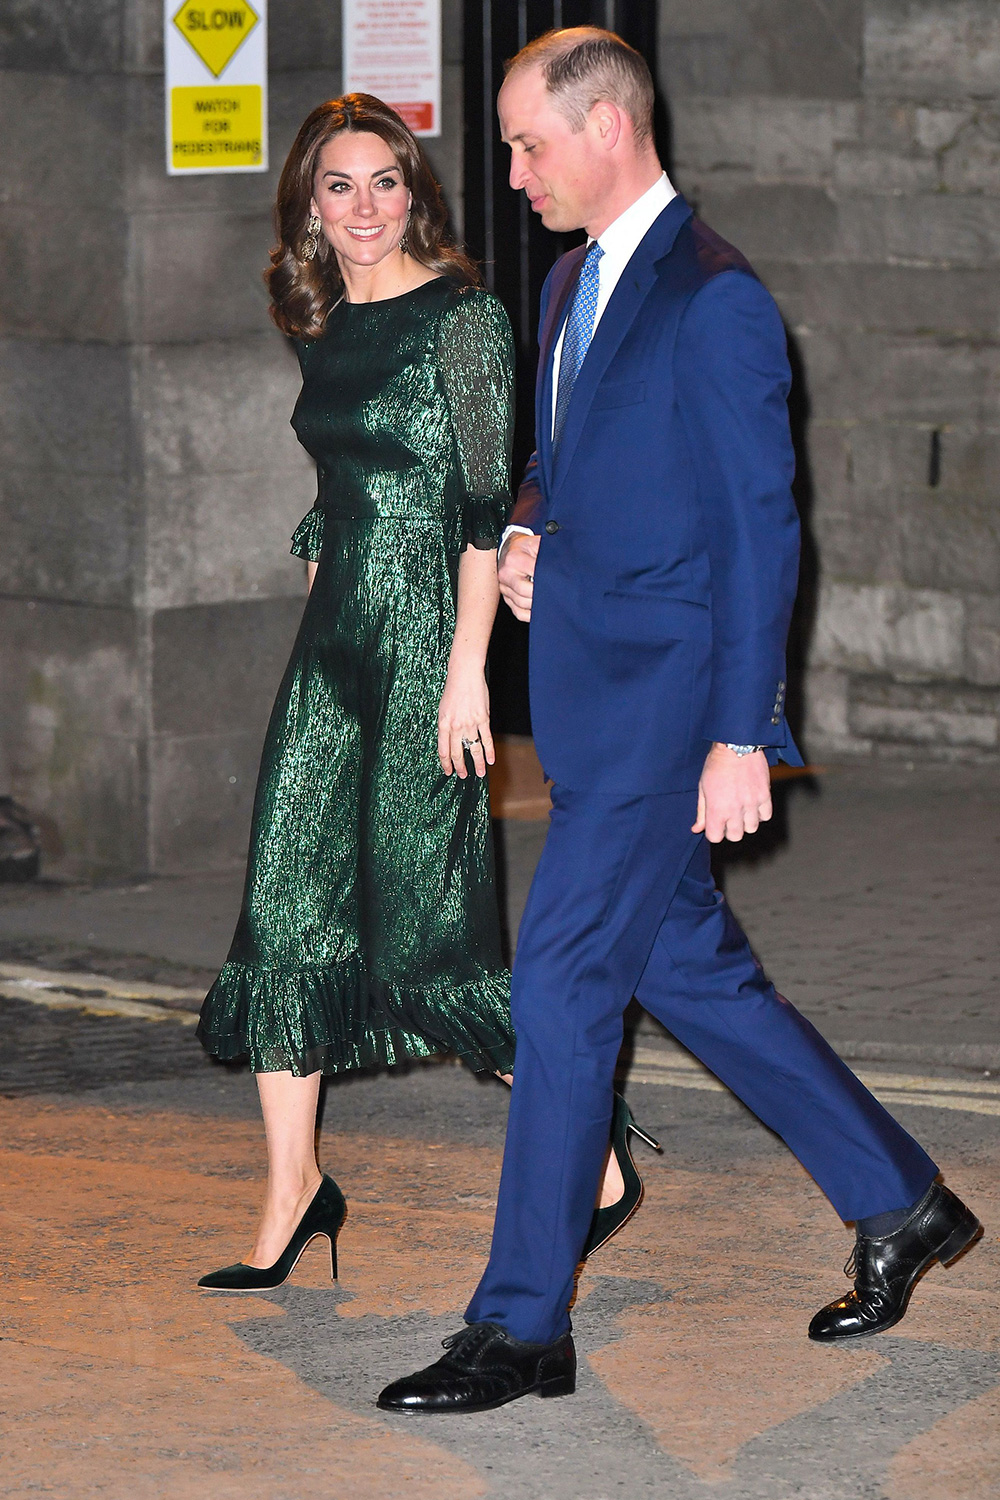 William, Duke of Cambridge and Catherine, Duchess of Cambridge attend a special reception hosted by the British Ambassador to Ireland at Storehouse's Gravity Bar on March 03, 2020 in Dublin, Ireland. The Duke and Duchess of Cambridge are undertaking an official visit to Ireland between Tuesday 3rd March and Thursday 5th March, at the request of the Foreign and Commonwealth Office